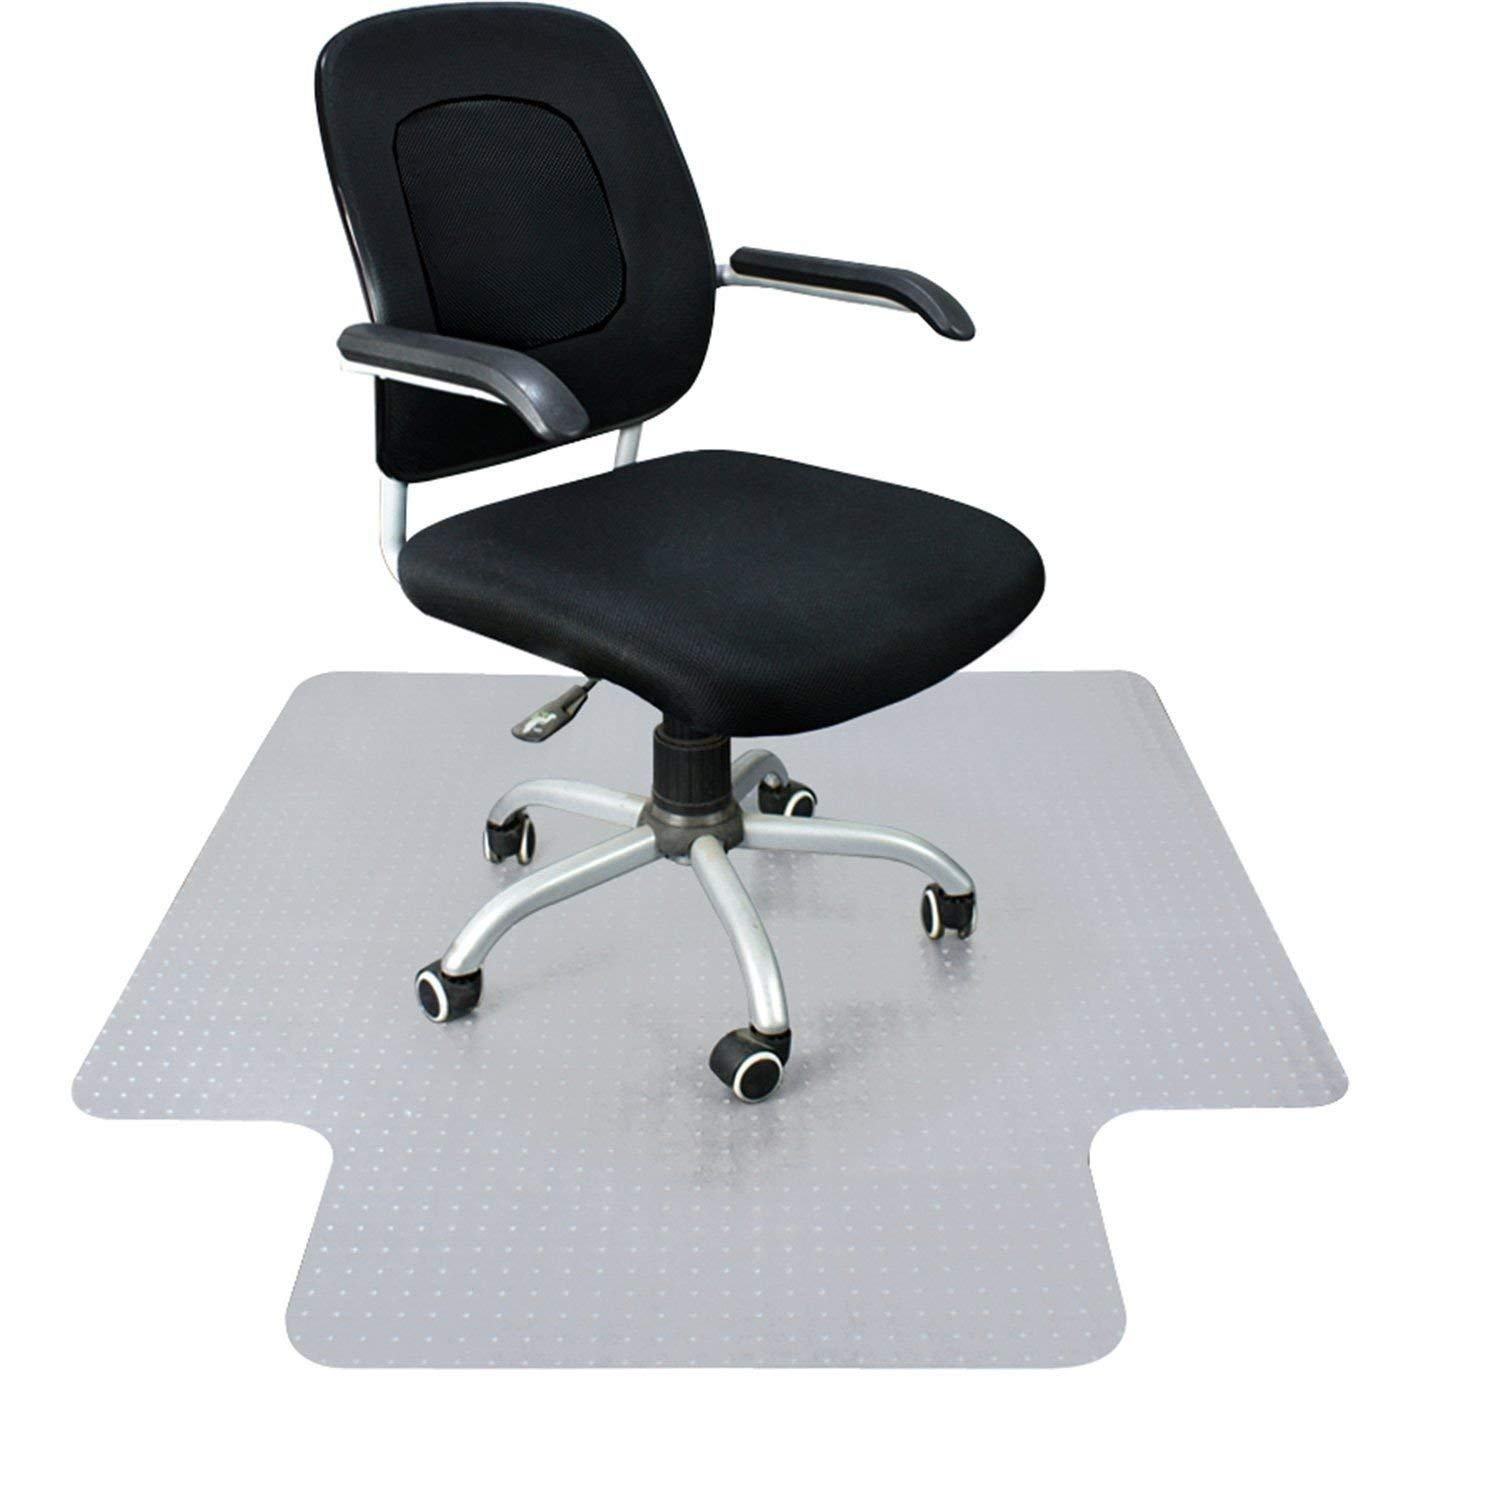 Rackarster Carpet Chair Mat, 36'' x 48'' PVC Desk Chair Mat for Low, Standard and Medium Pile Carpets, Transparent by Rackarster